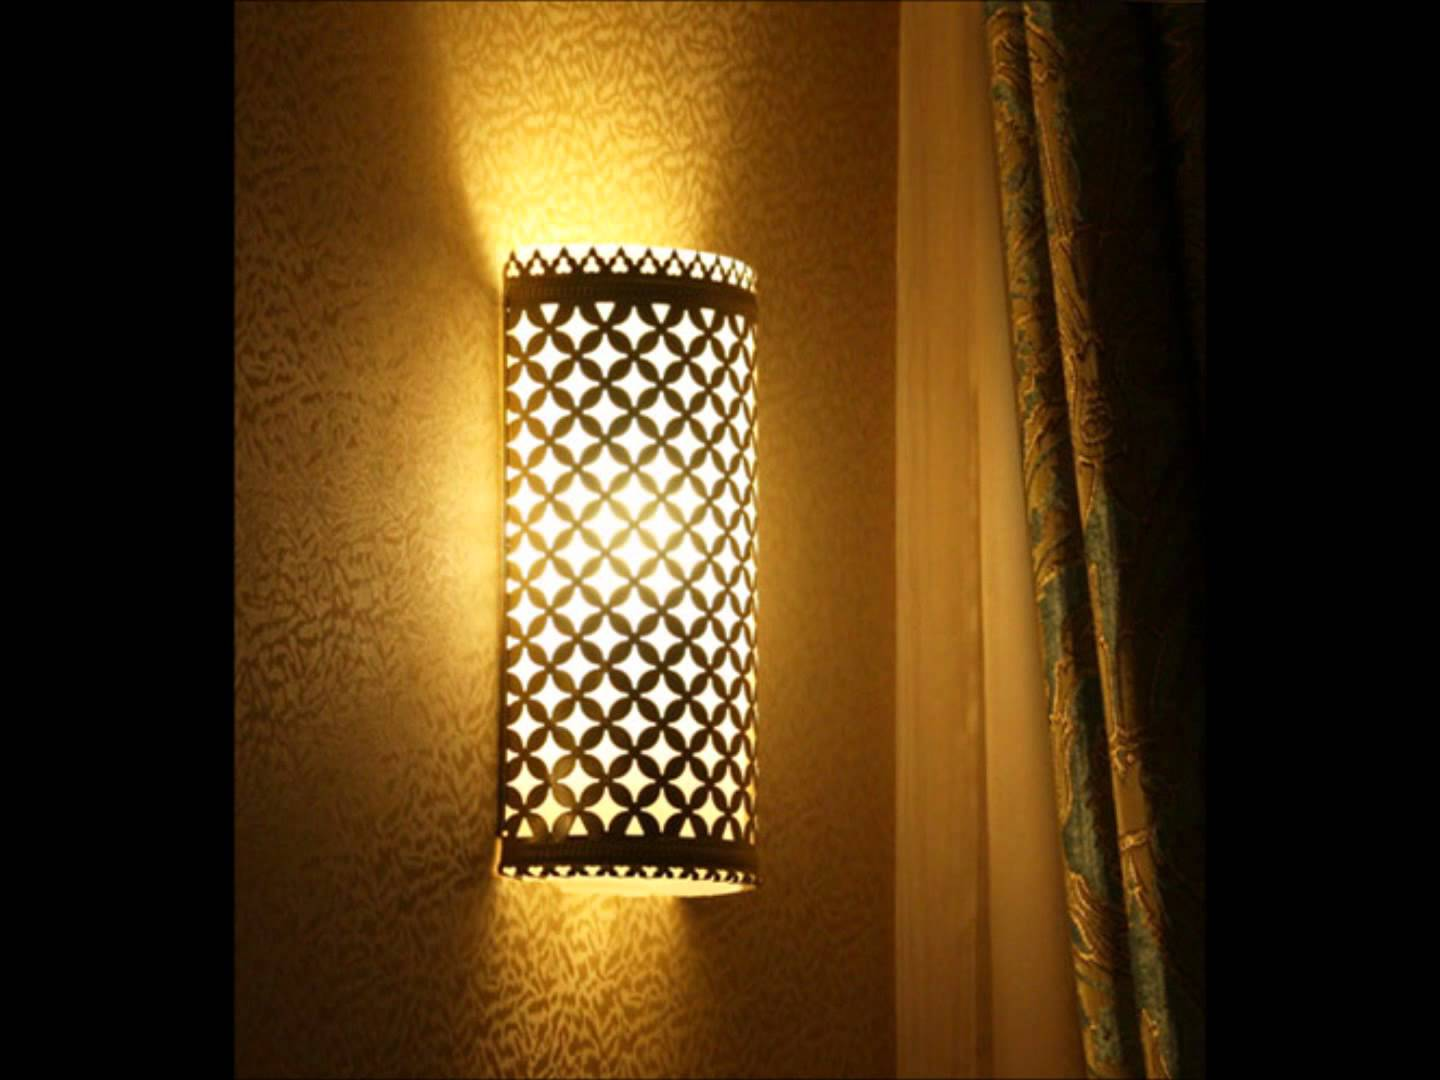 how to decorate your kitchen outdoor sinks 10 adorable handmade night light designs for good fantasy ...